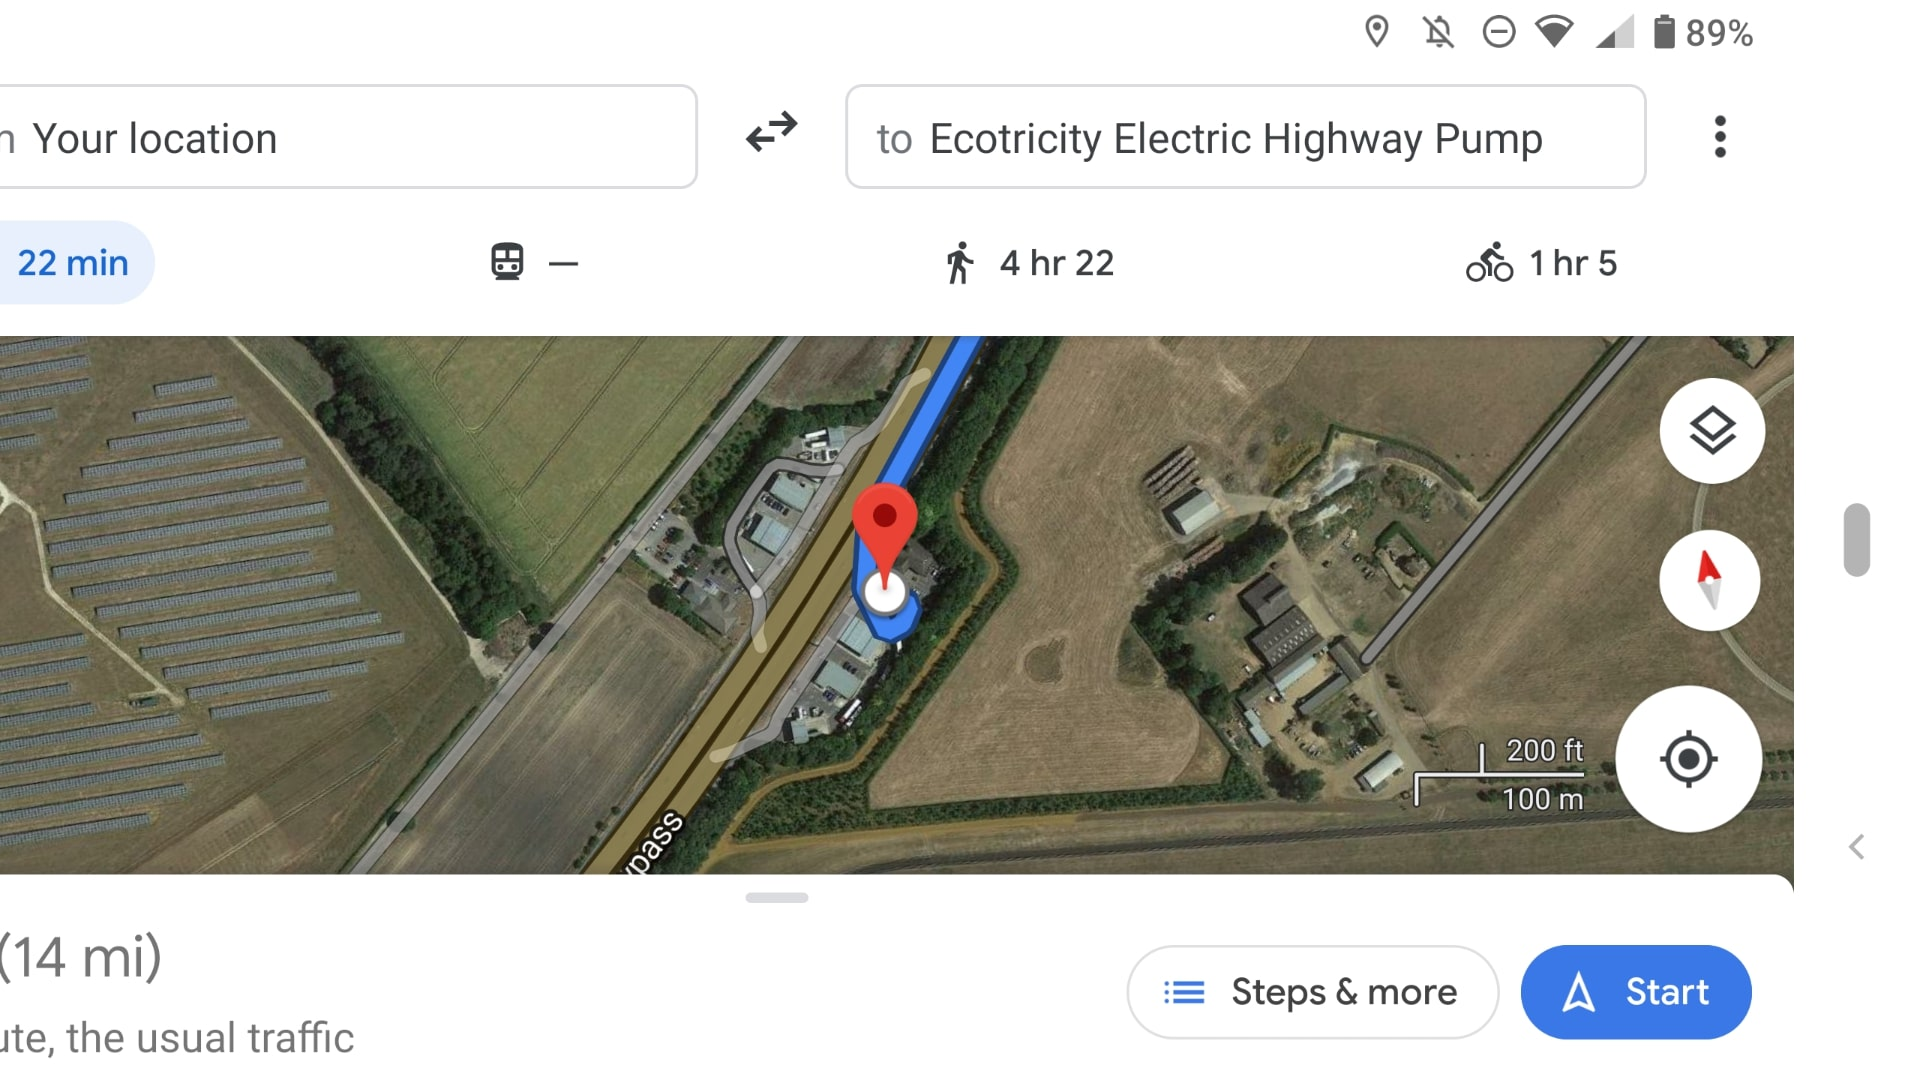 You can now decide what car charger you want on Google Maps